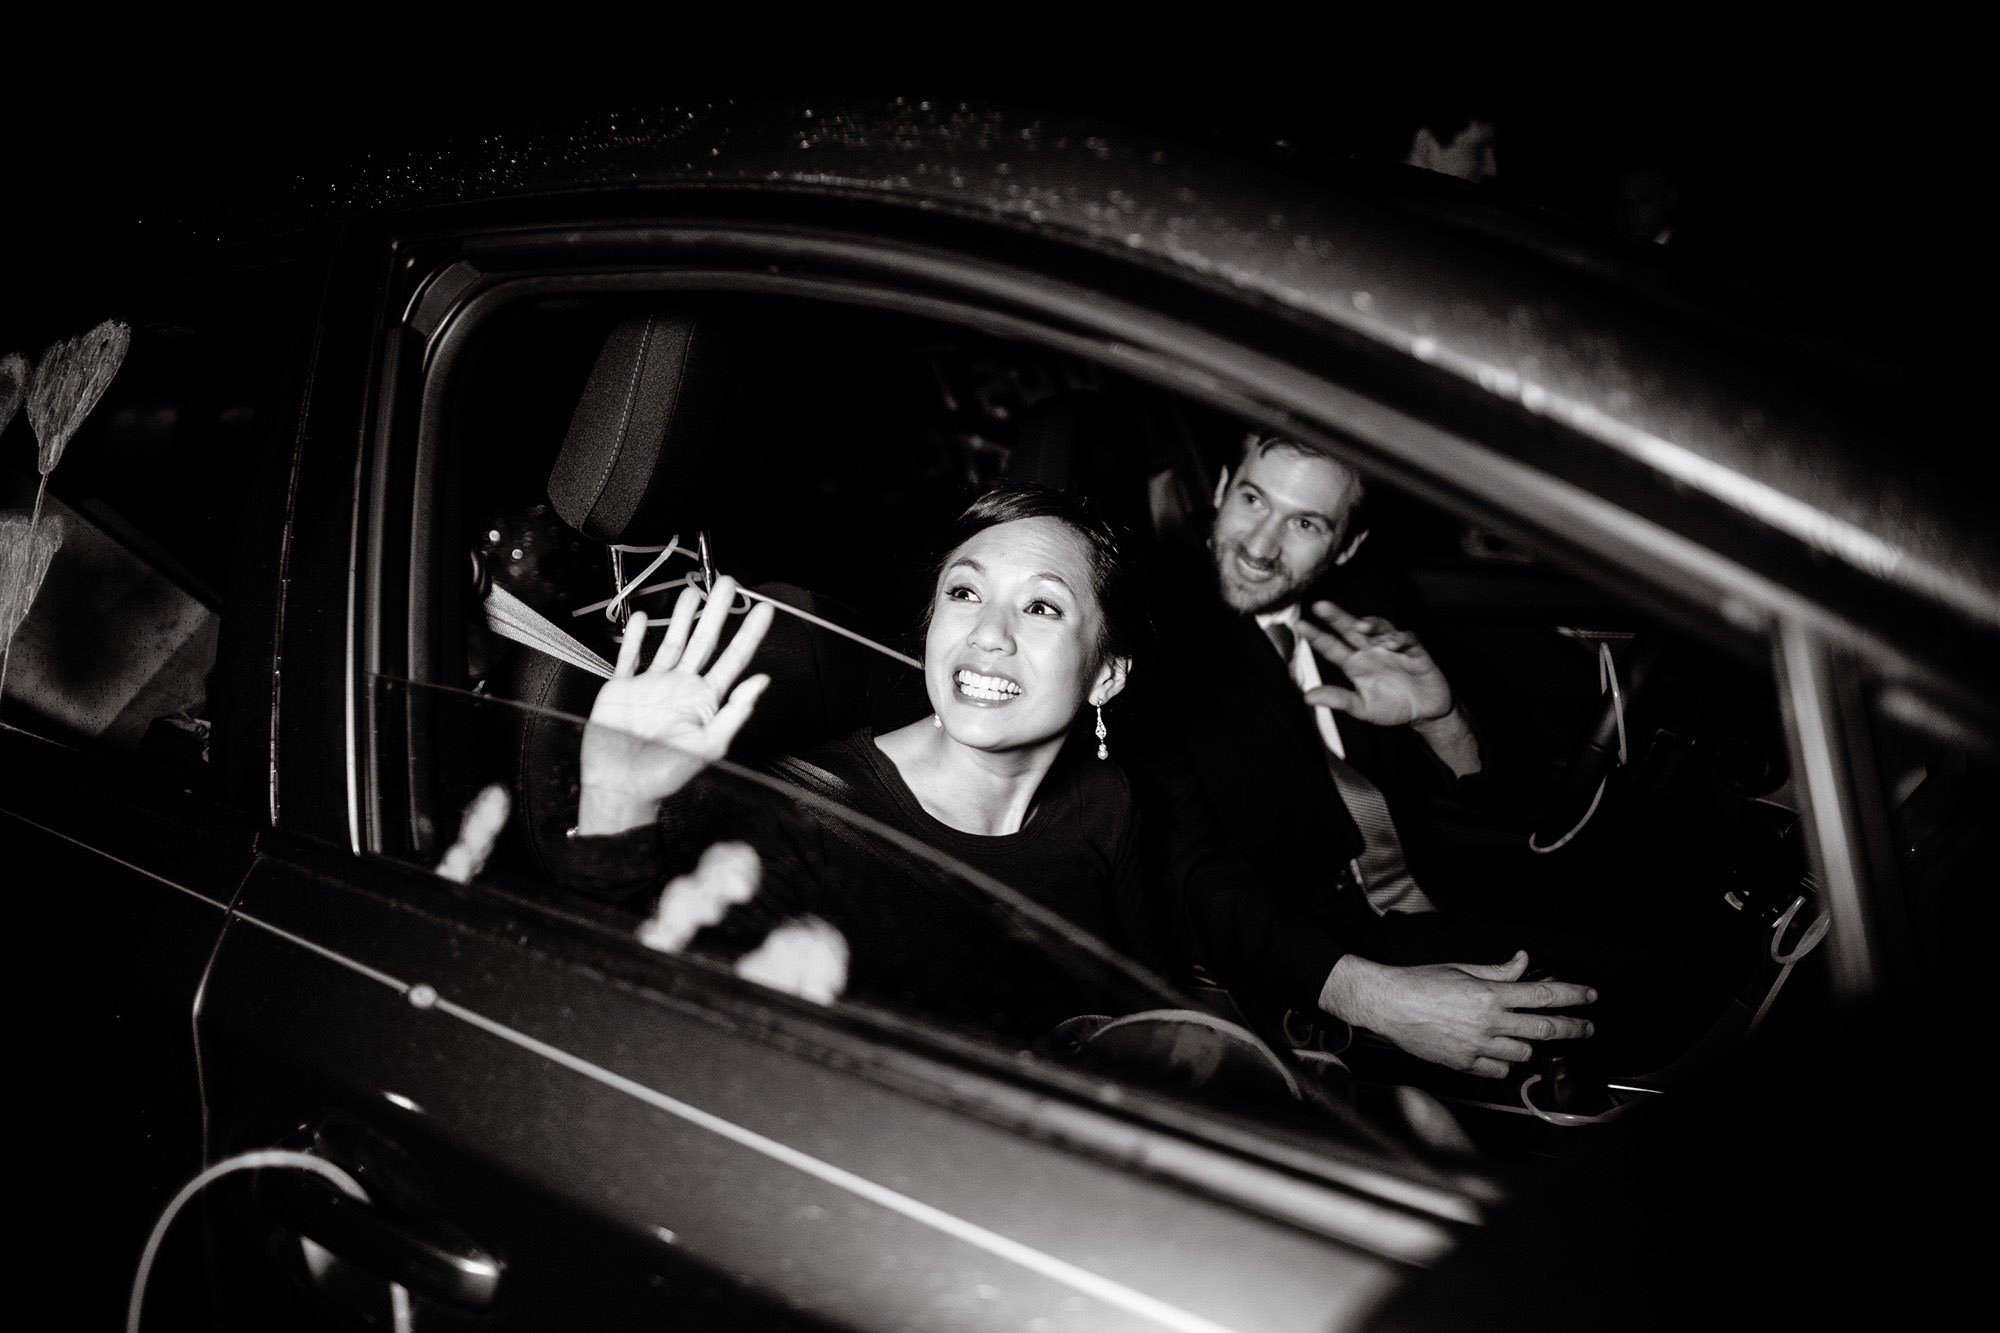 The bride and groom wave goodbye to their guests following their Tower Hill Botanic Garden Wedding reception.